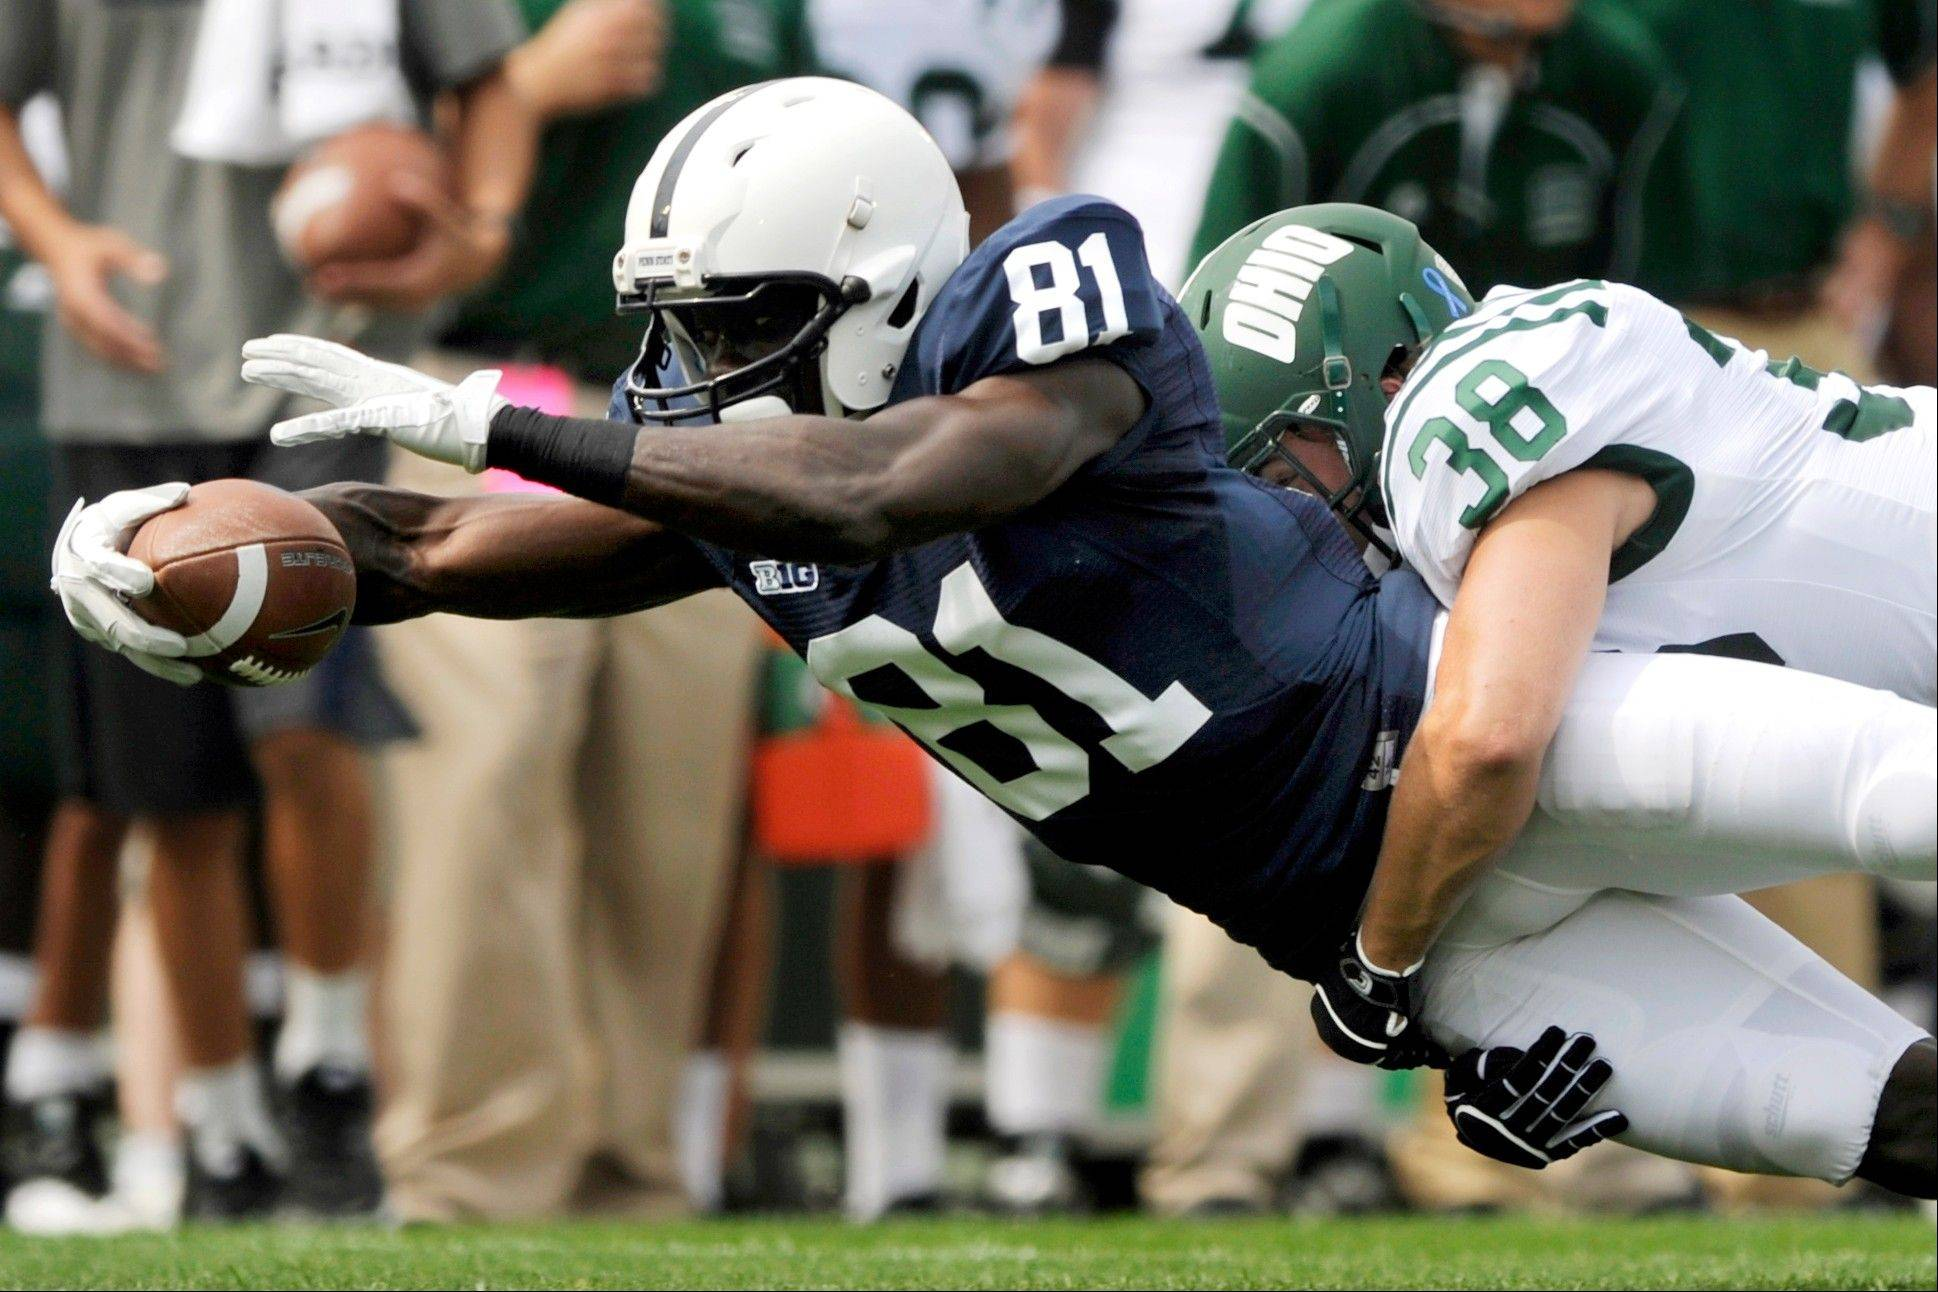 Penn State's Shawney Kersey is tackled by Ohio's Keith Moore during last Saturday's game in State College, Pa. Ohio won 24-14